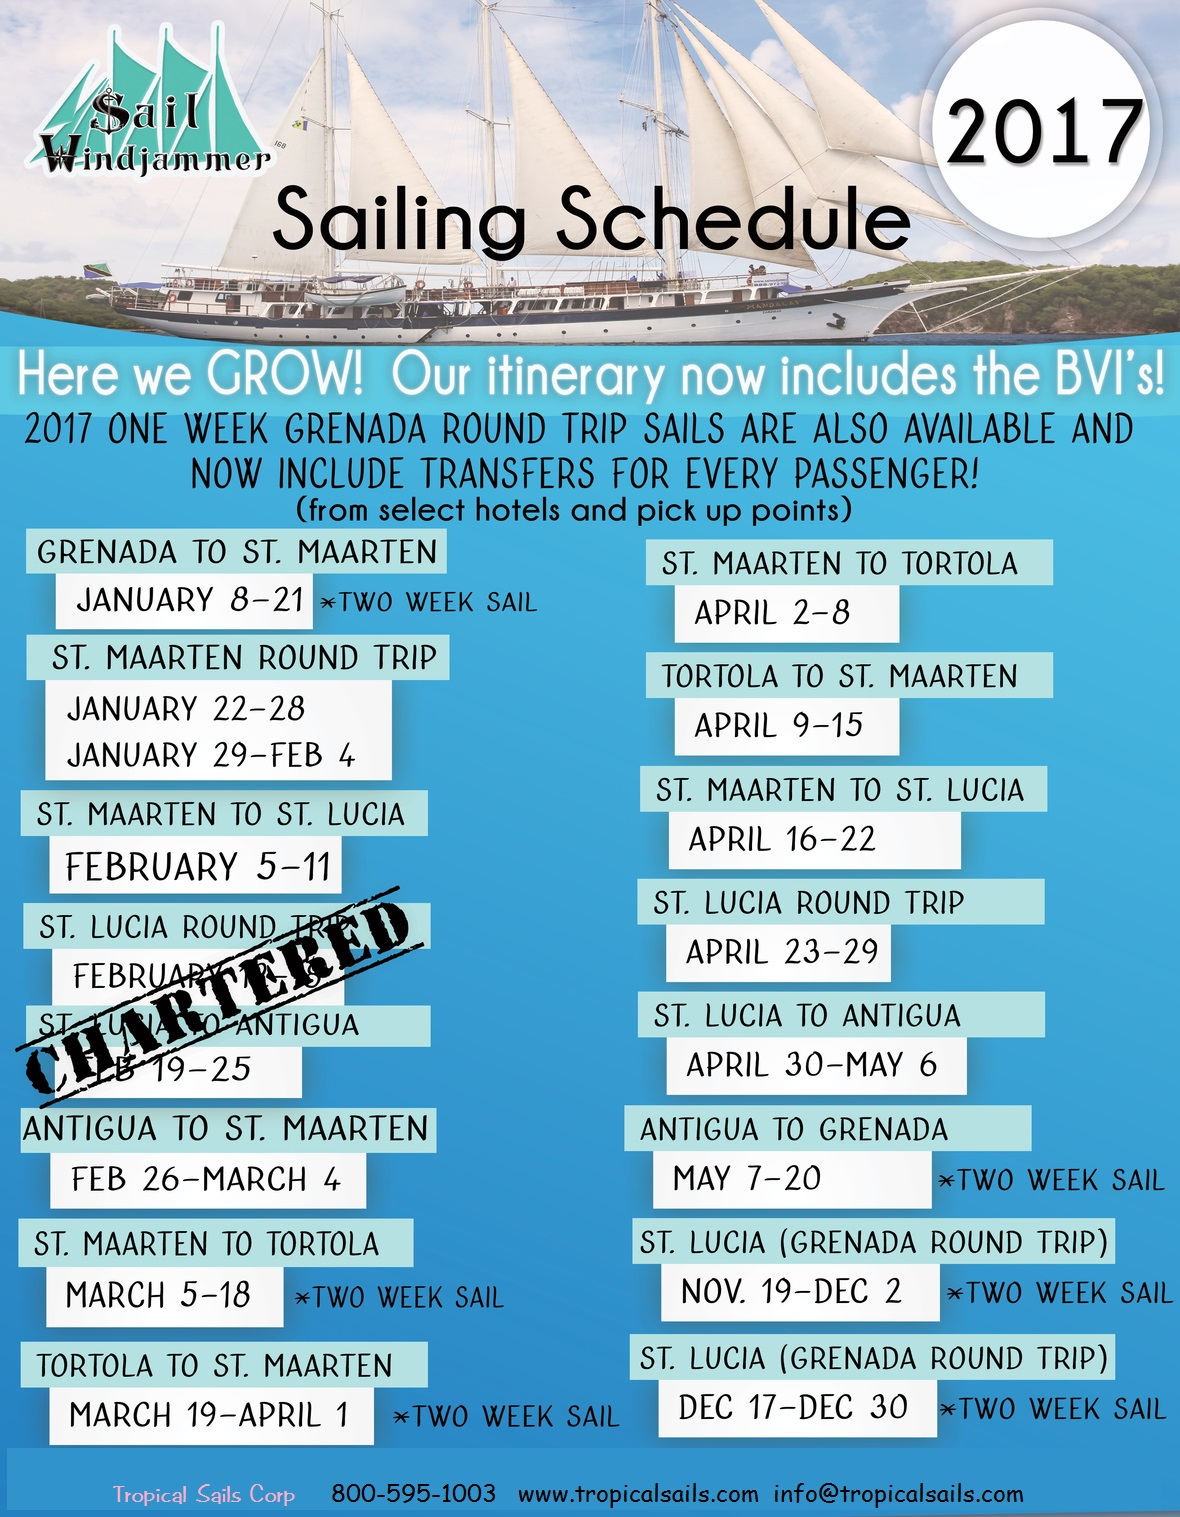 Sail Windjammer Mandalay Schedule for 2017 windjammer mandalay Windjammer Mandalay Schedule 2017 Tall Ship Cruise Sail Windjammer Mandalay 2017 Schedule